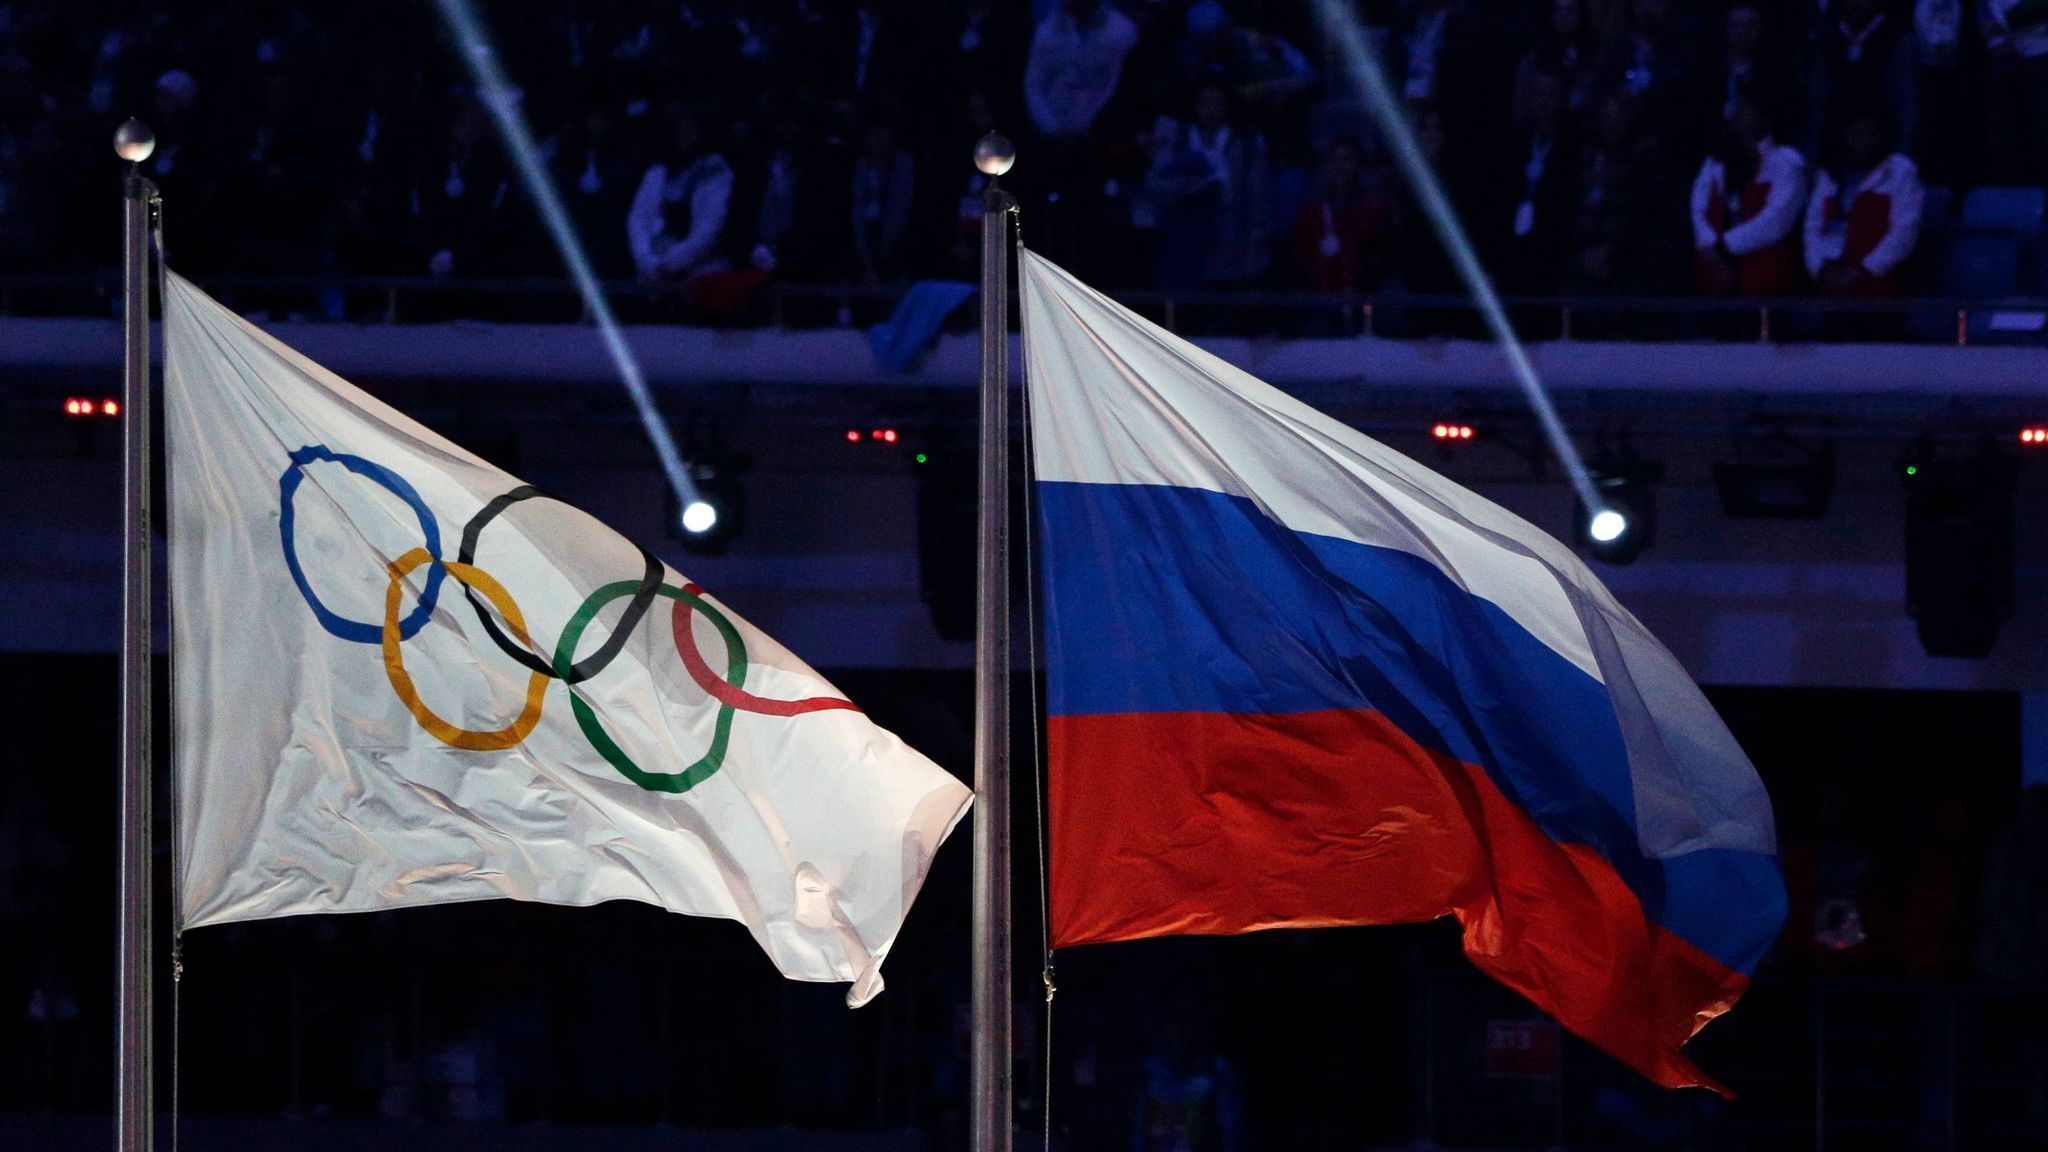 La-sp-russian-doping-report-20161209